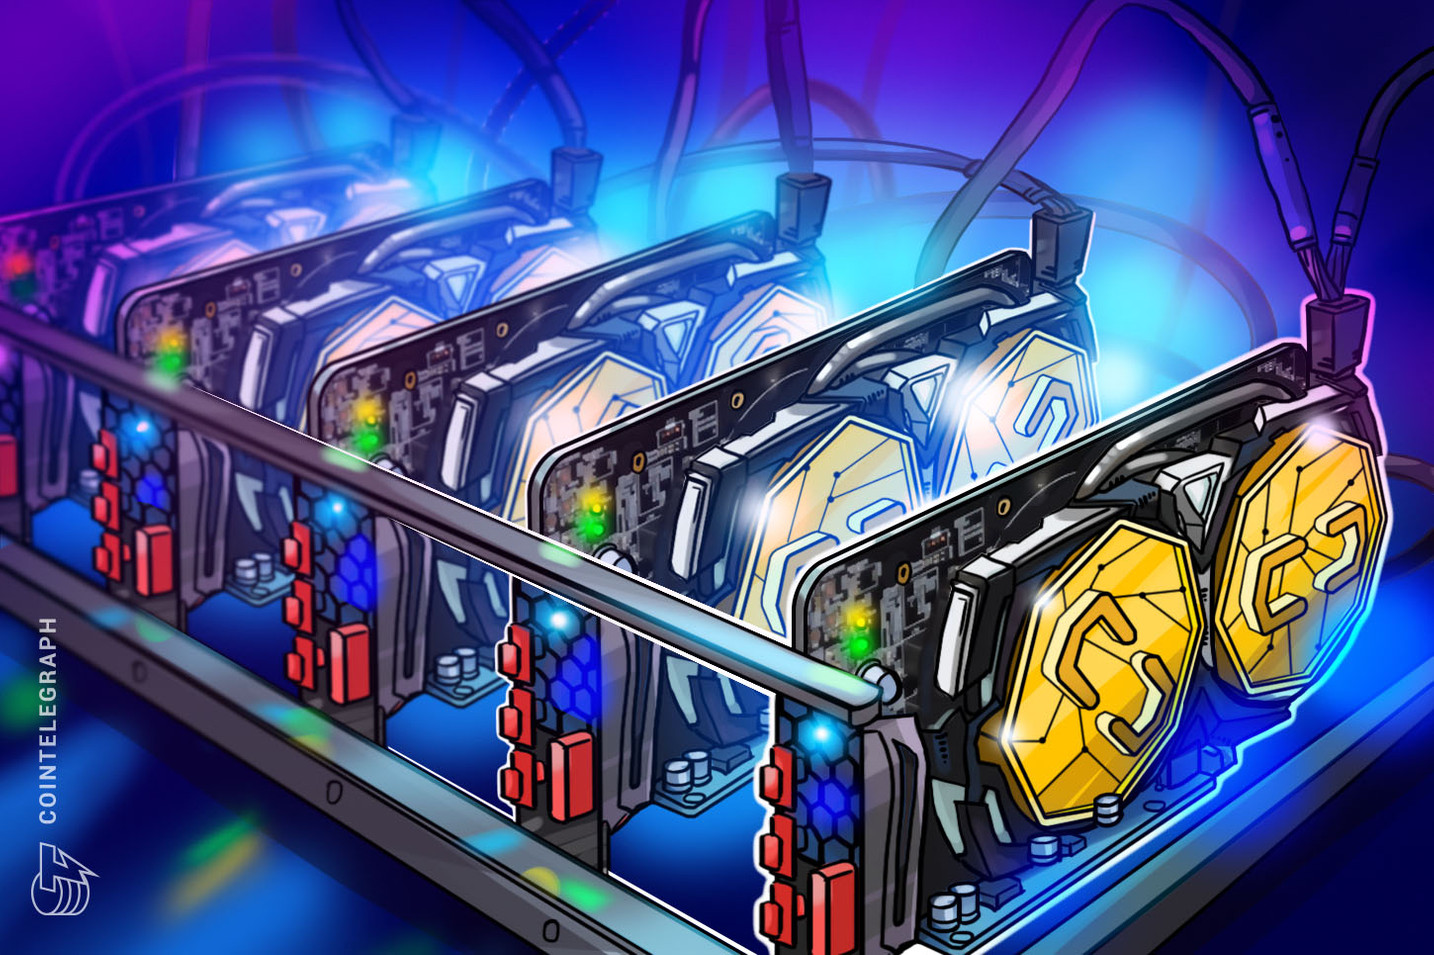 Shock: Ethereum Miners Against Proposal to Reduce Block Rewards by 75%